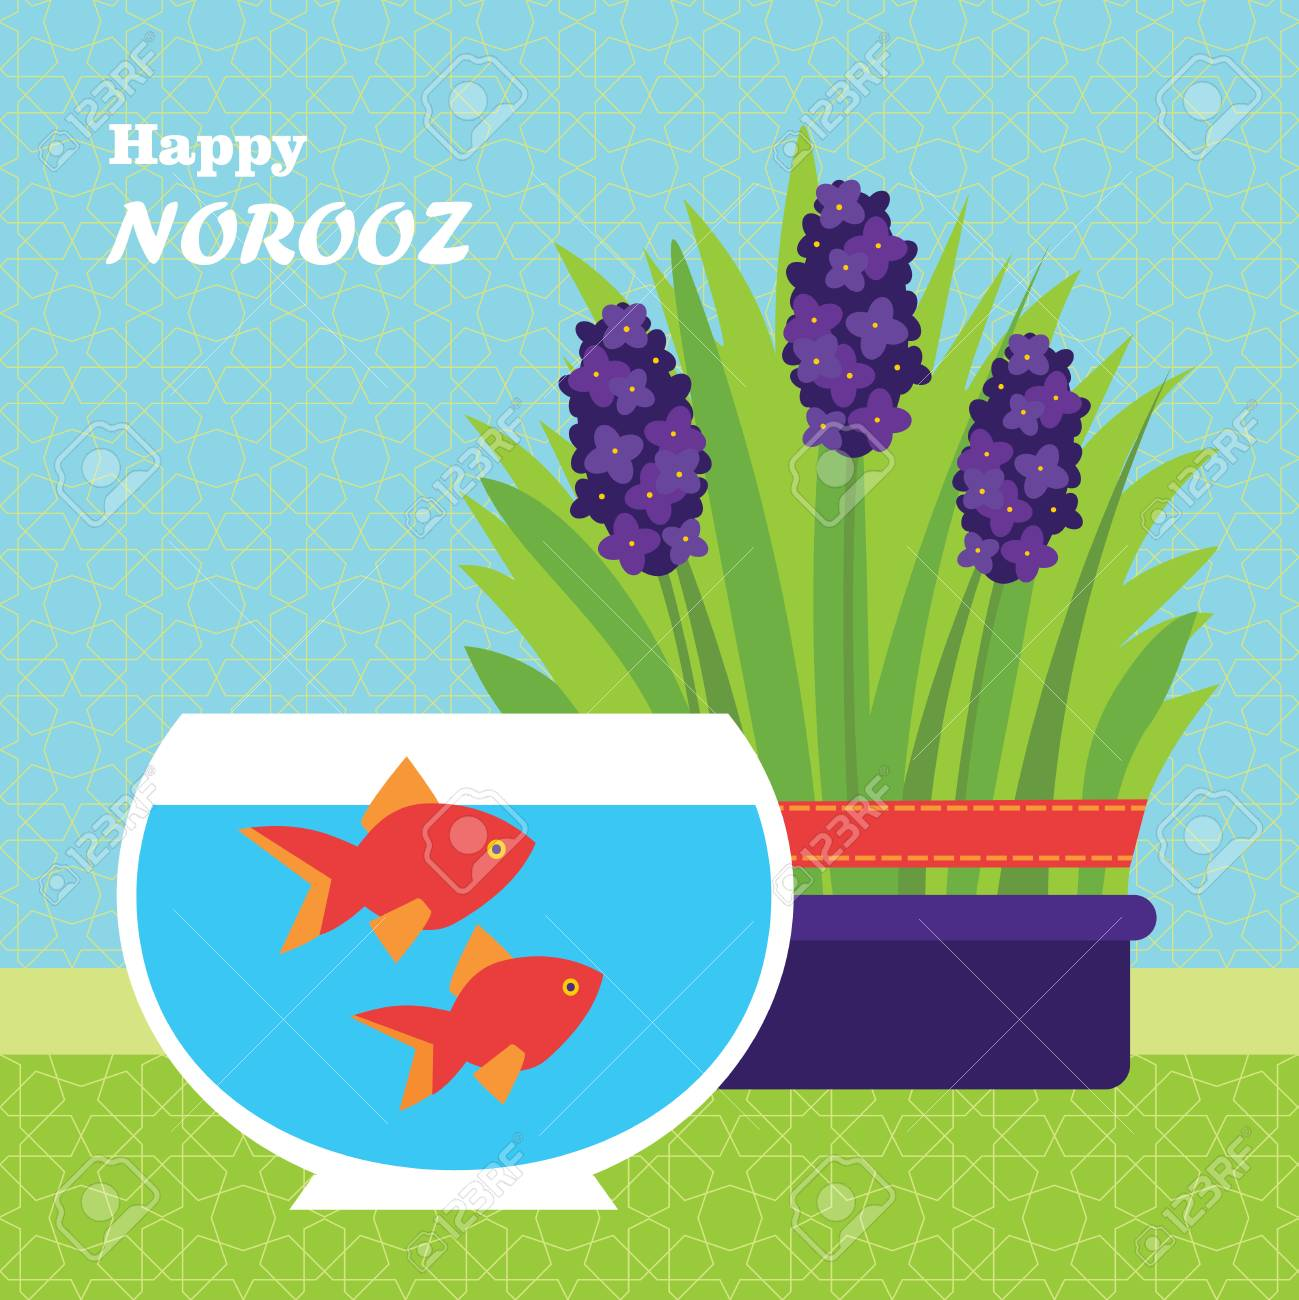 happy persian new year card template vector illustration with fish and grass stock vector